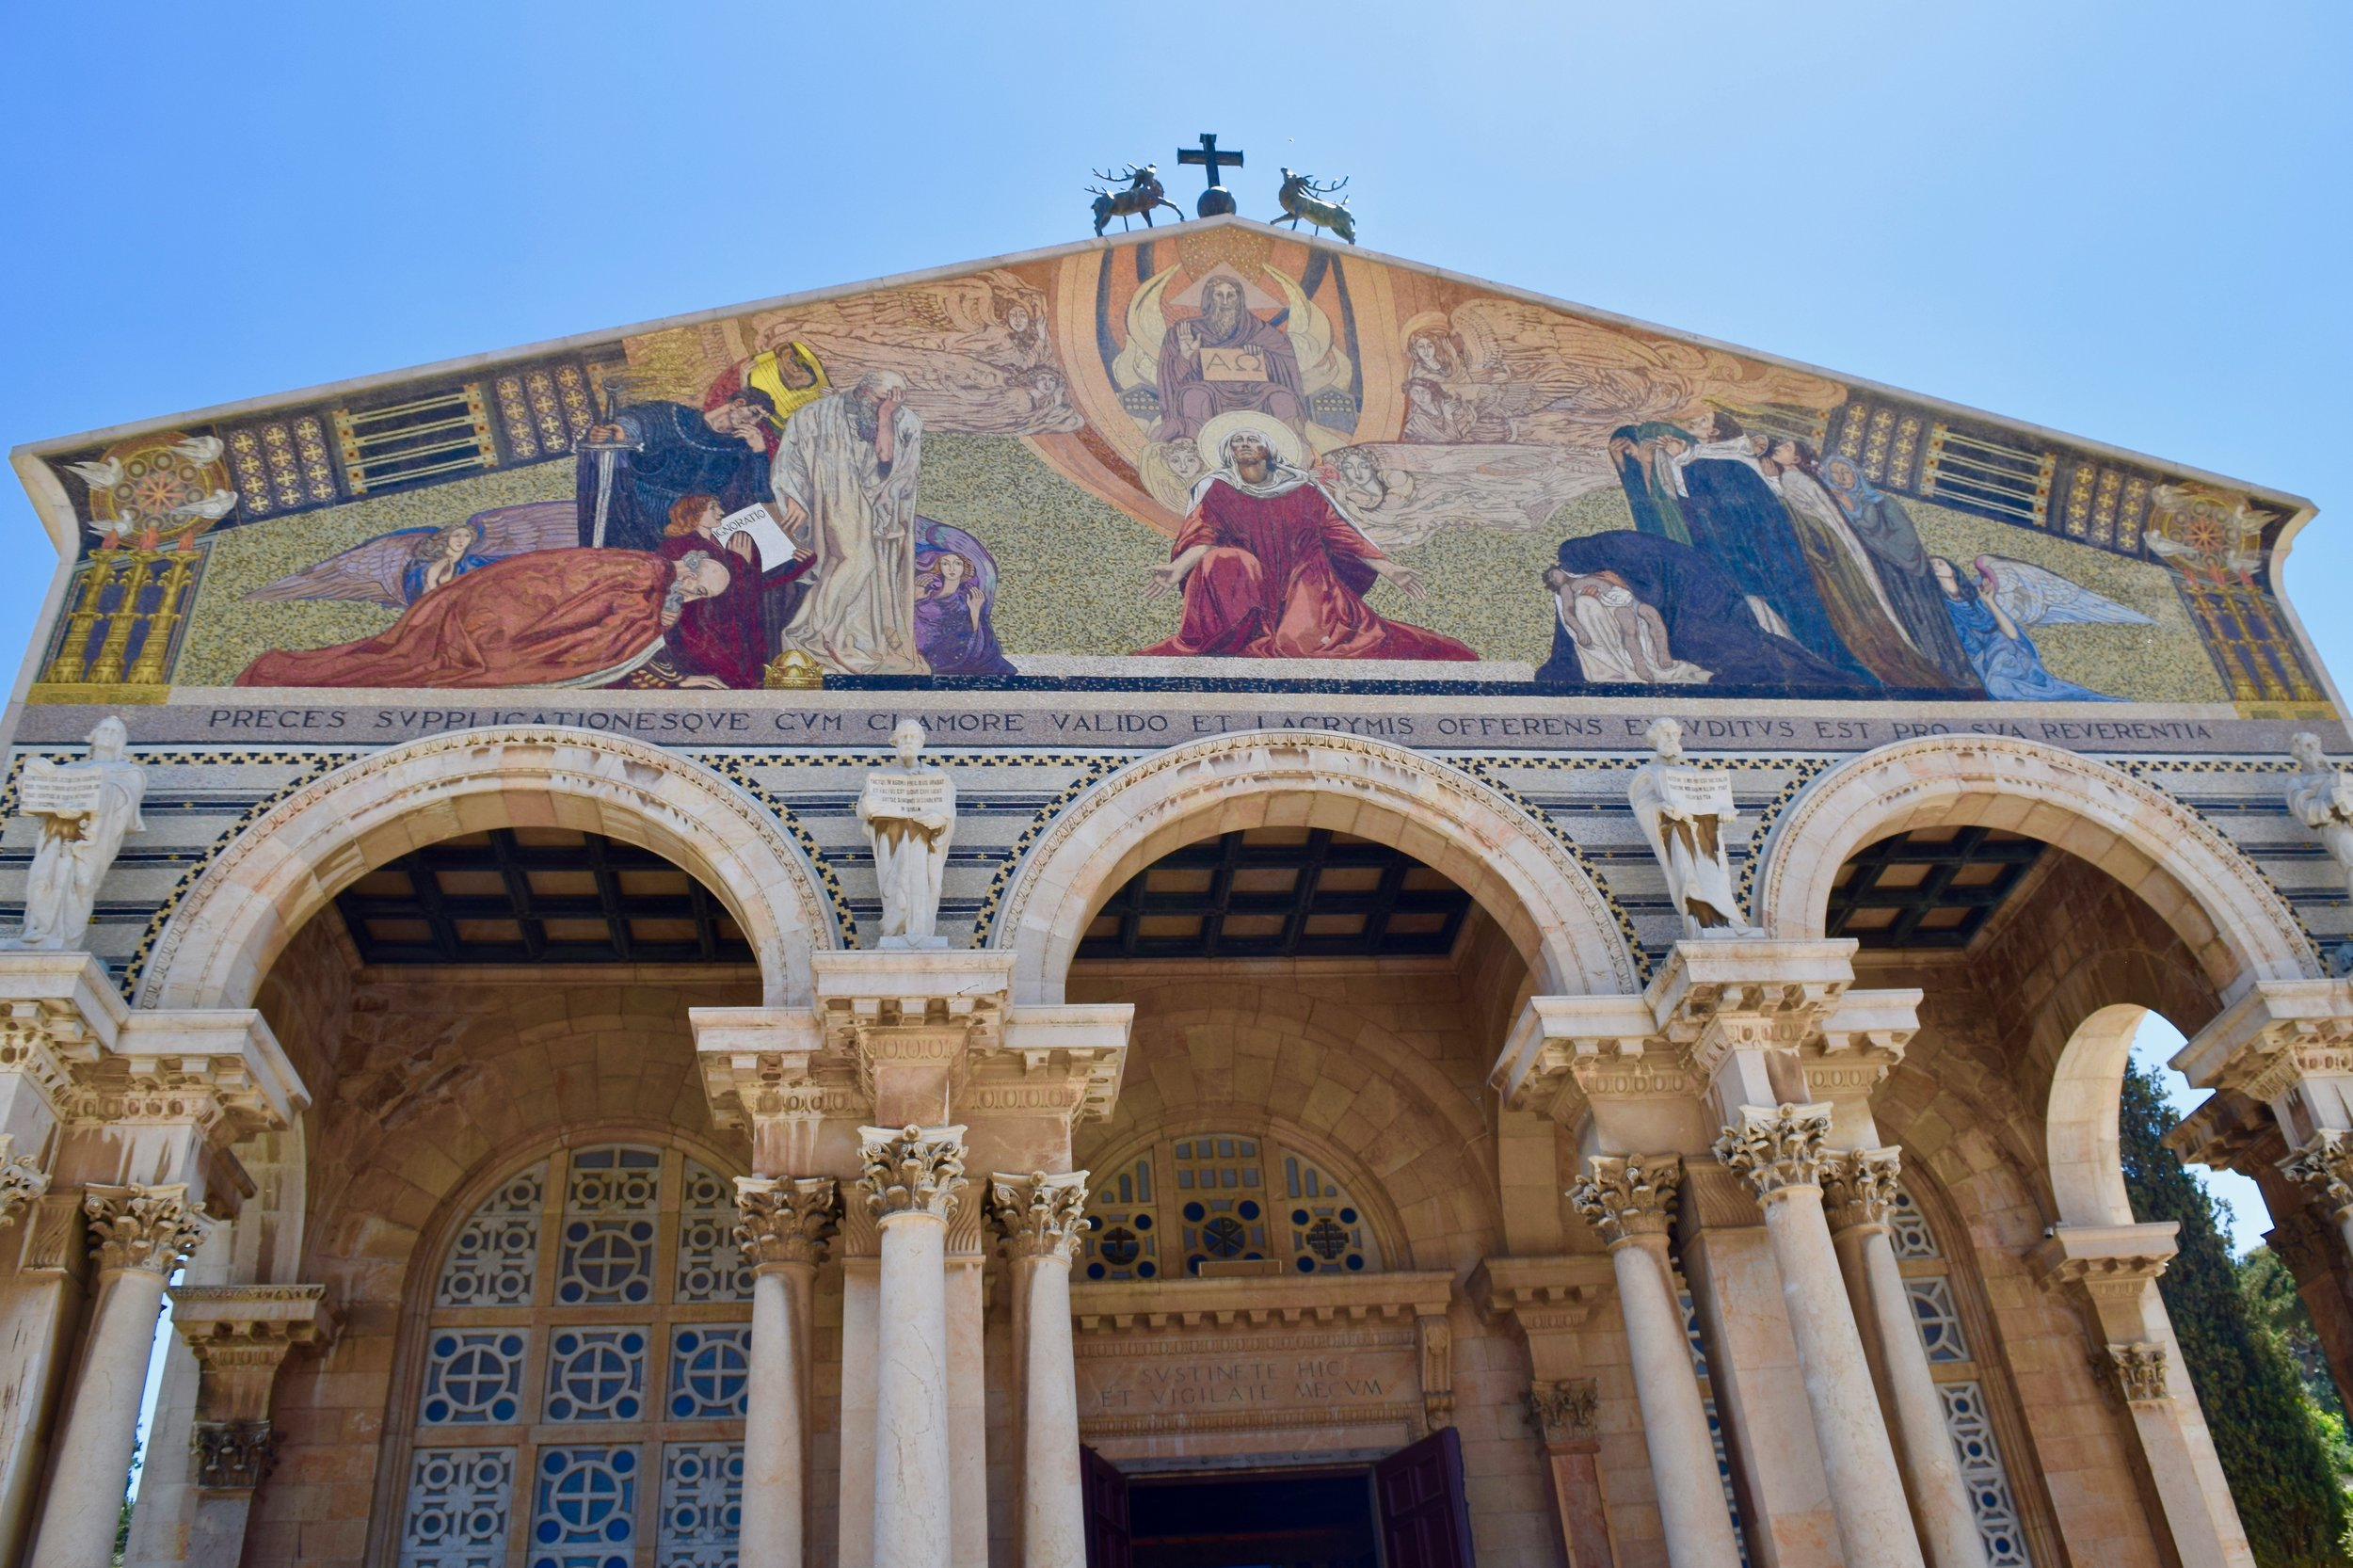 Basilica of the Agony or Church of All Nations